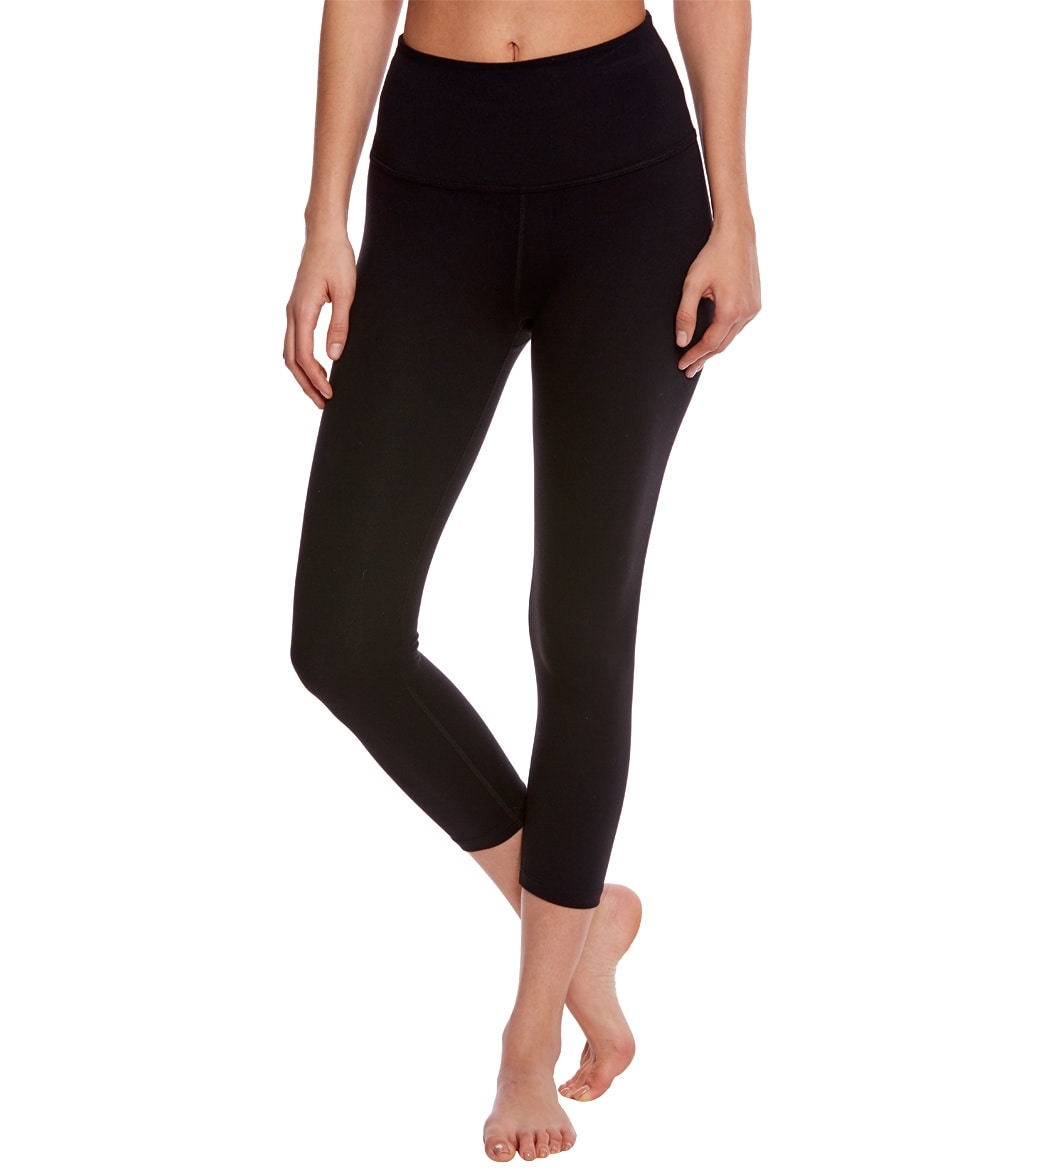 14bf47214c Beyond Yoga High Waisted Yoga Capris at YogaOutlet.com - Free Shipping